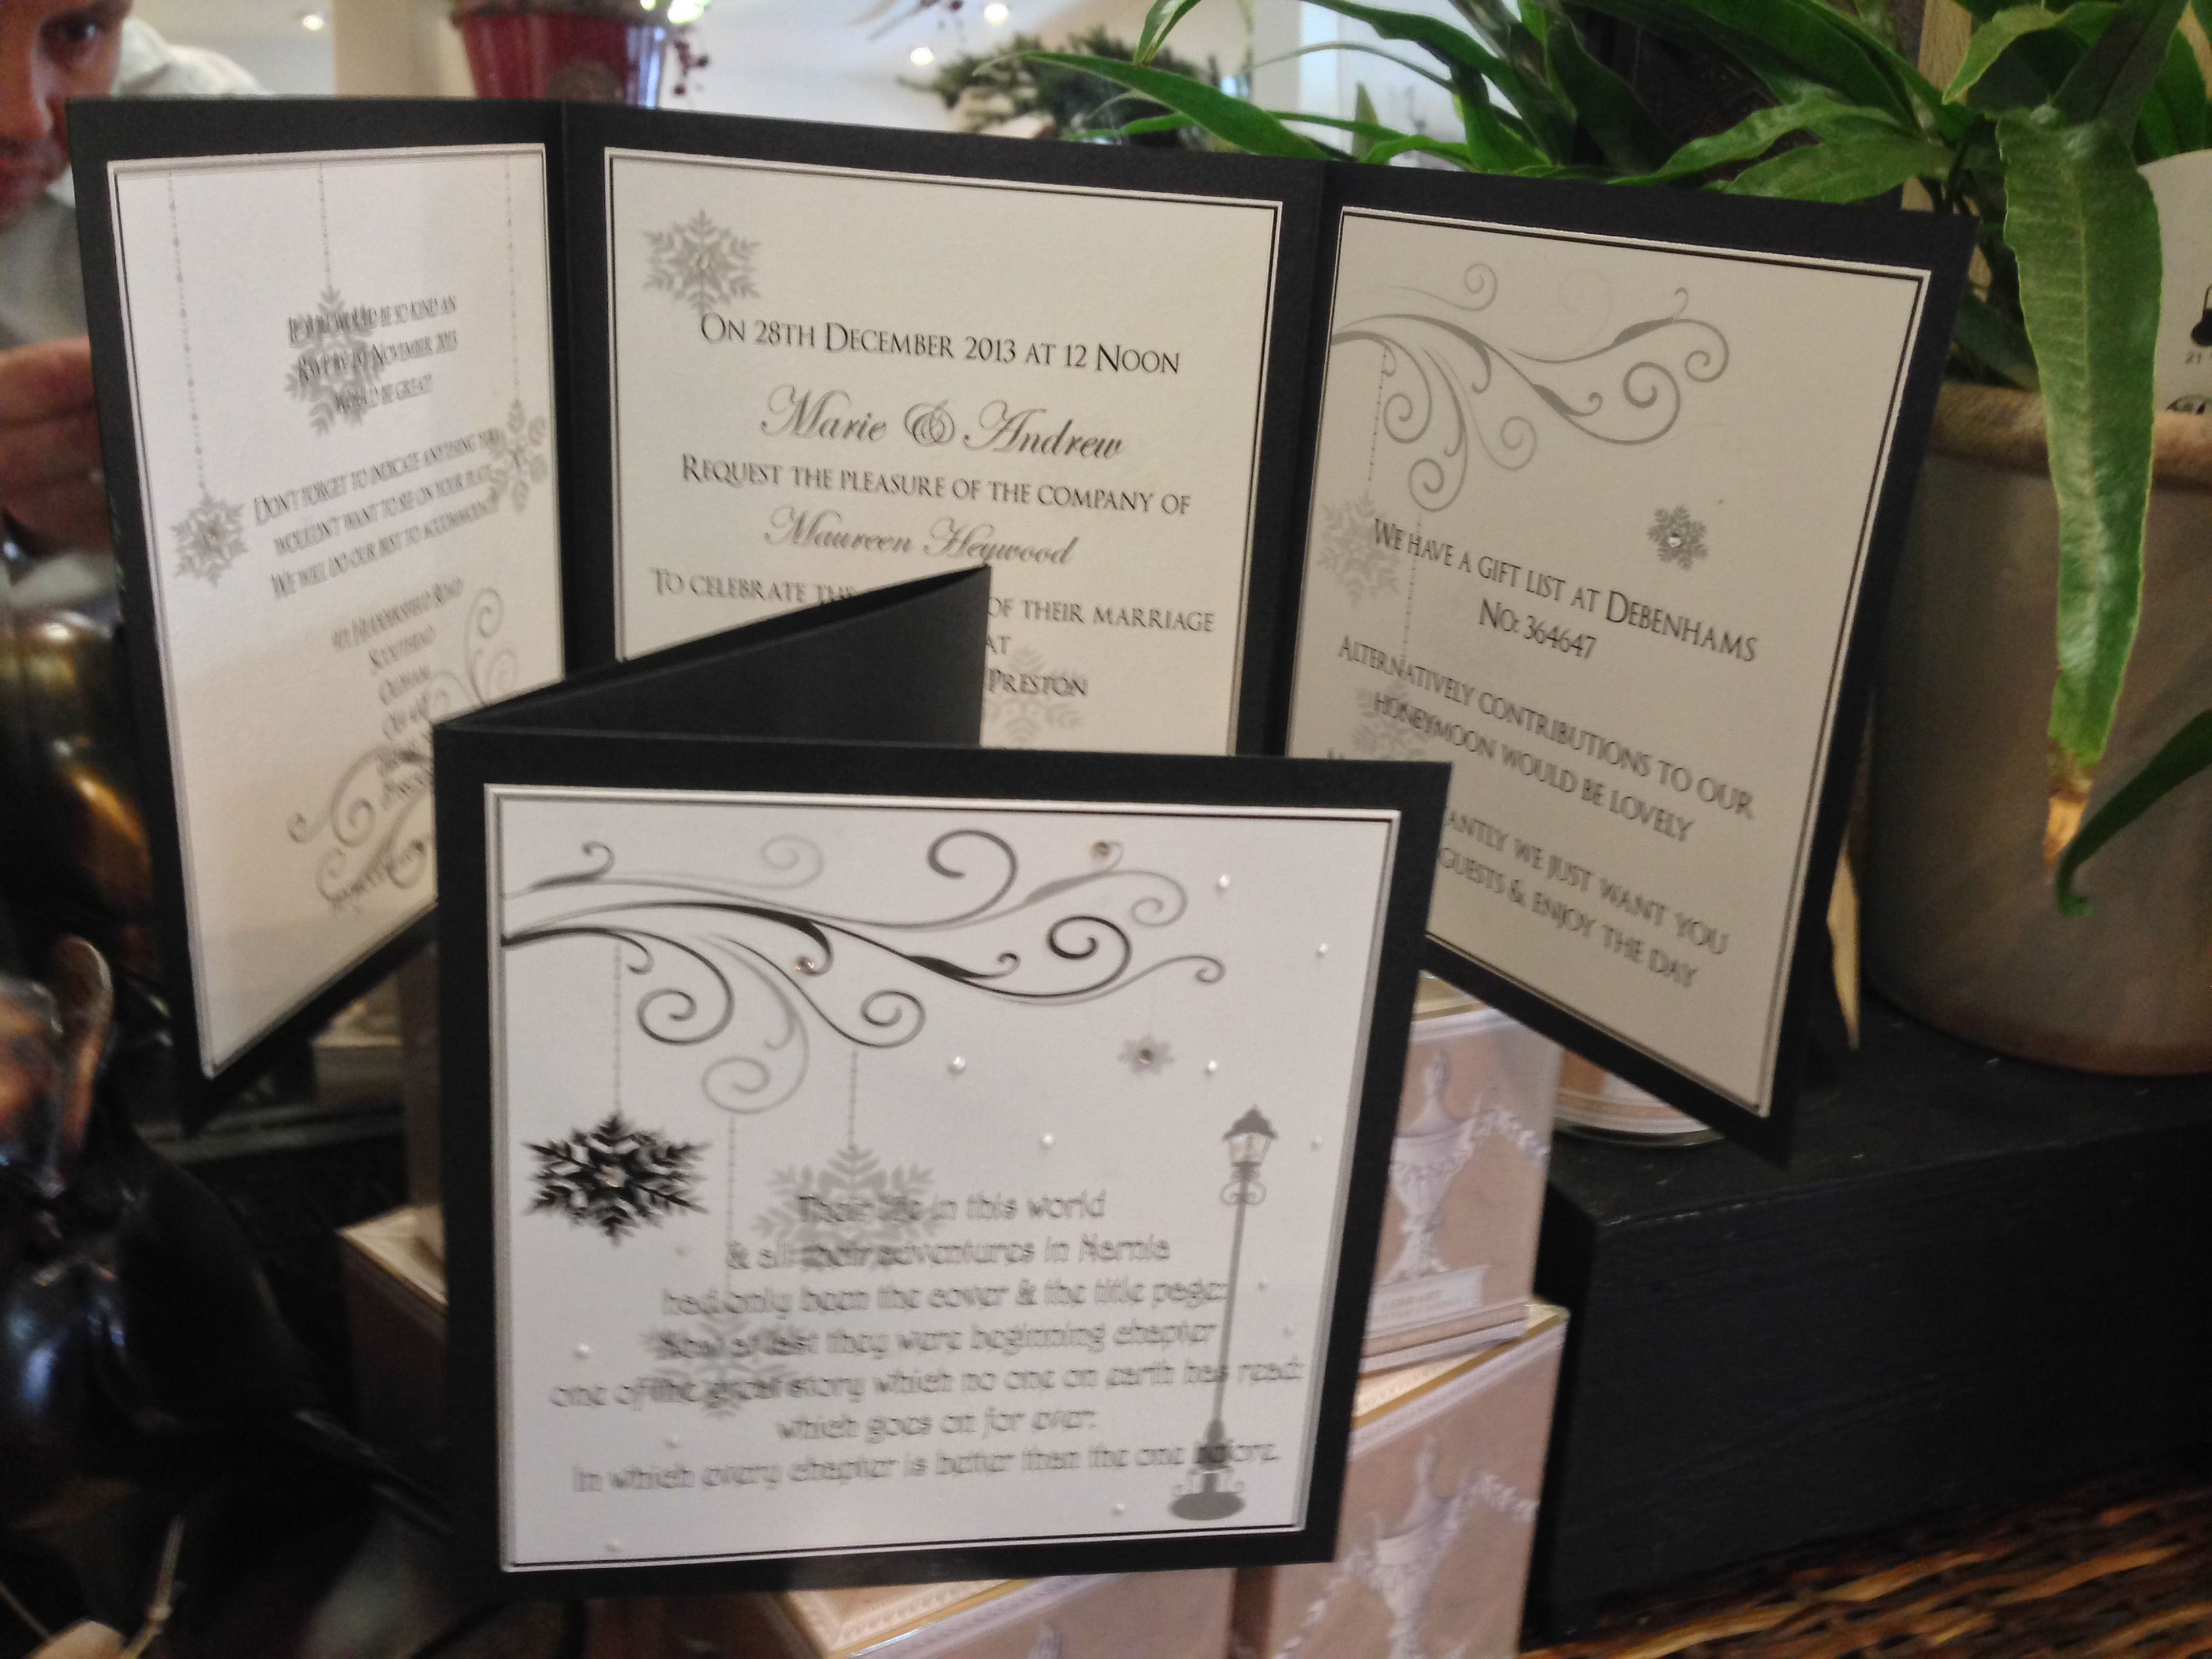 Winter wonderland narnia was the theme for these wedding invitations ...